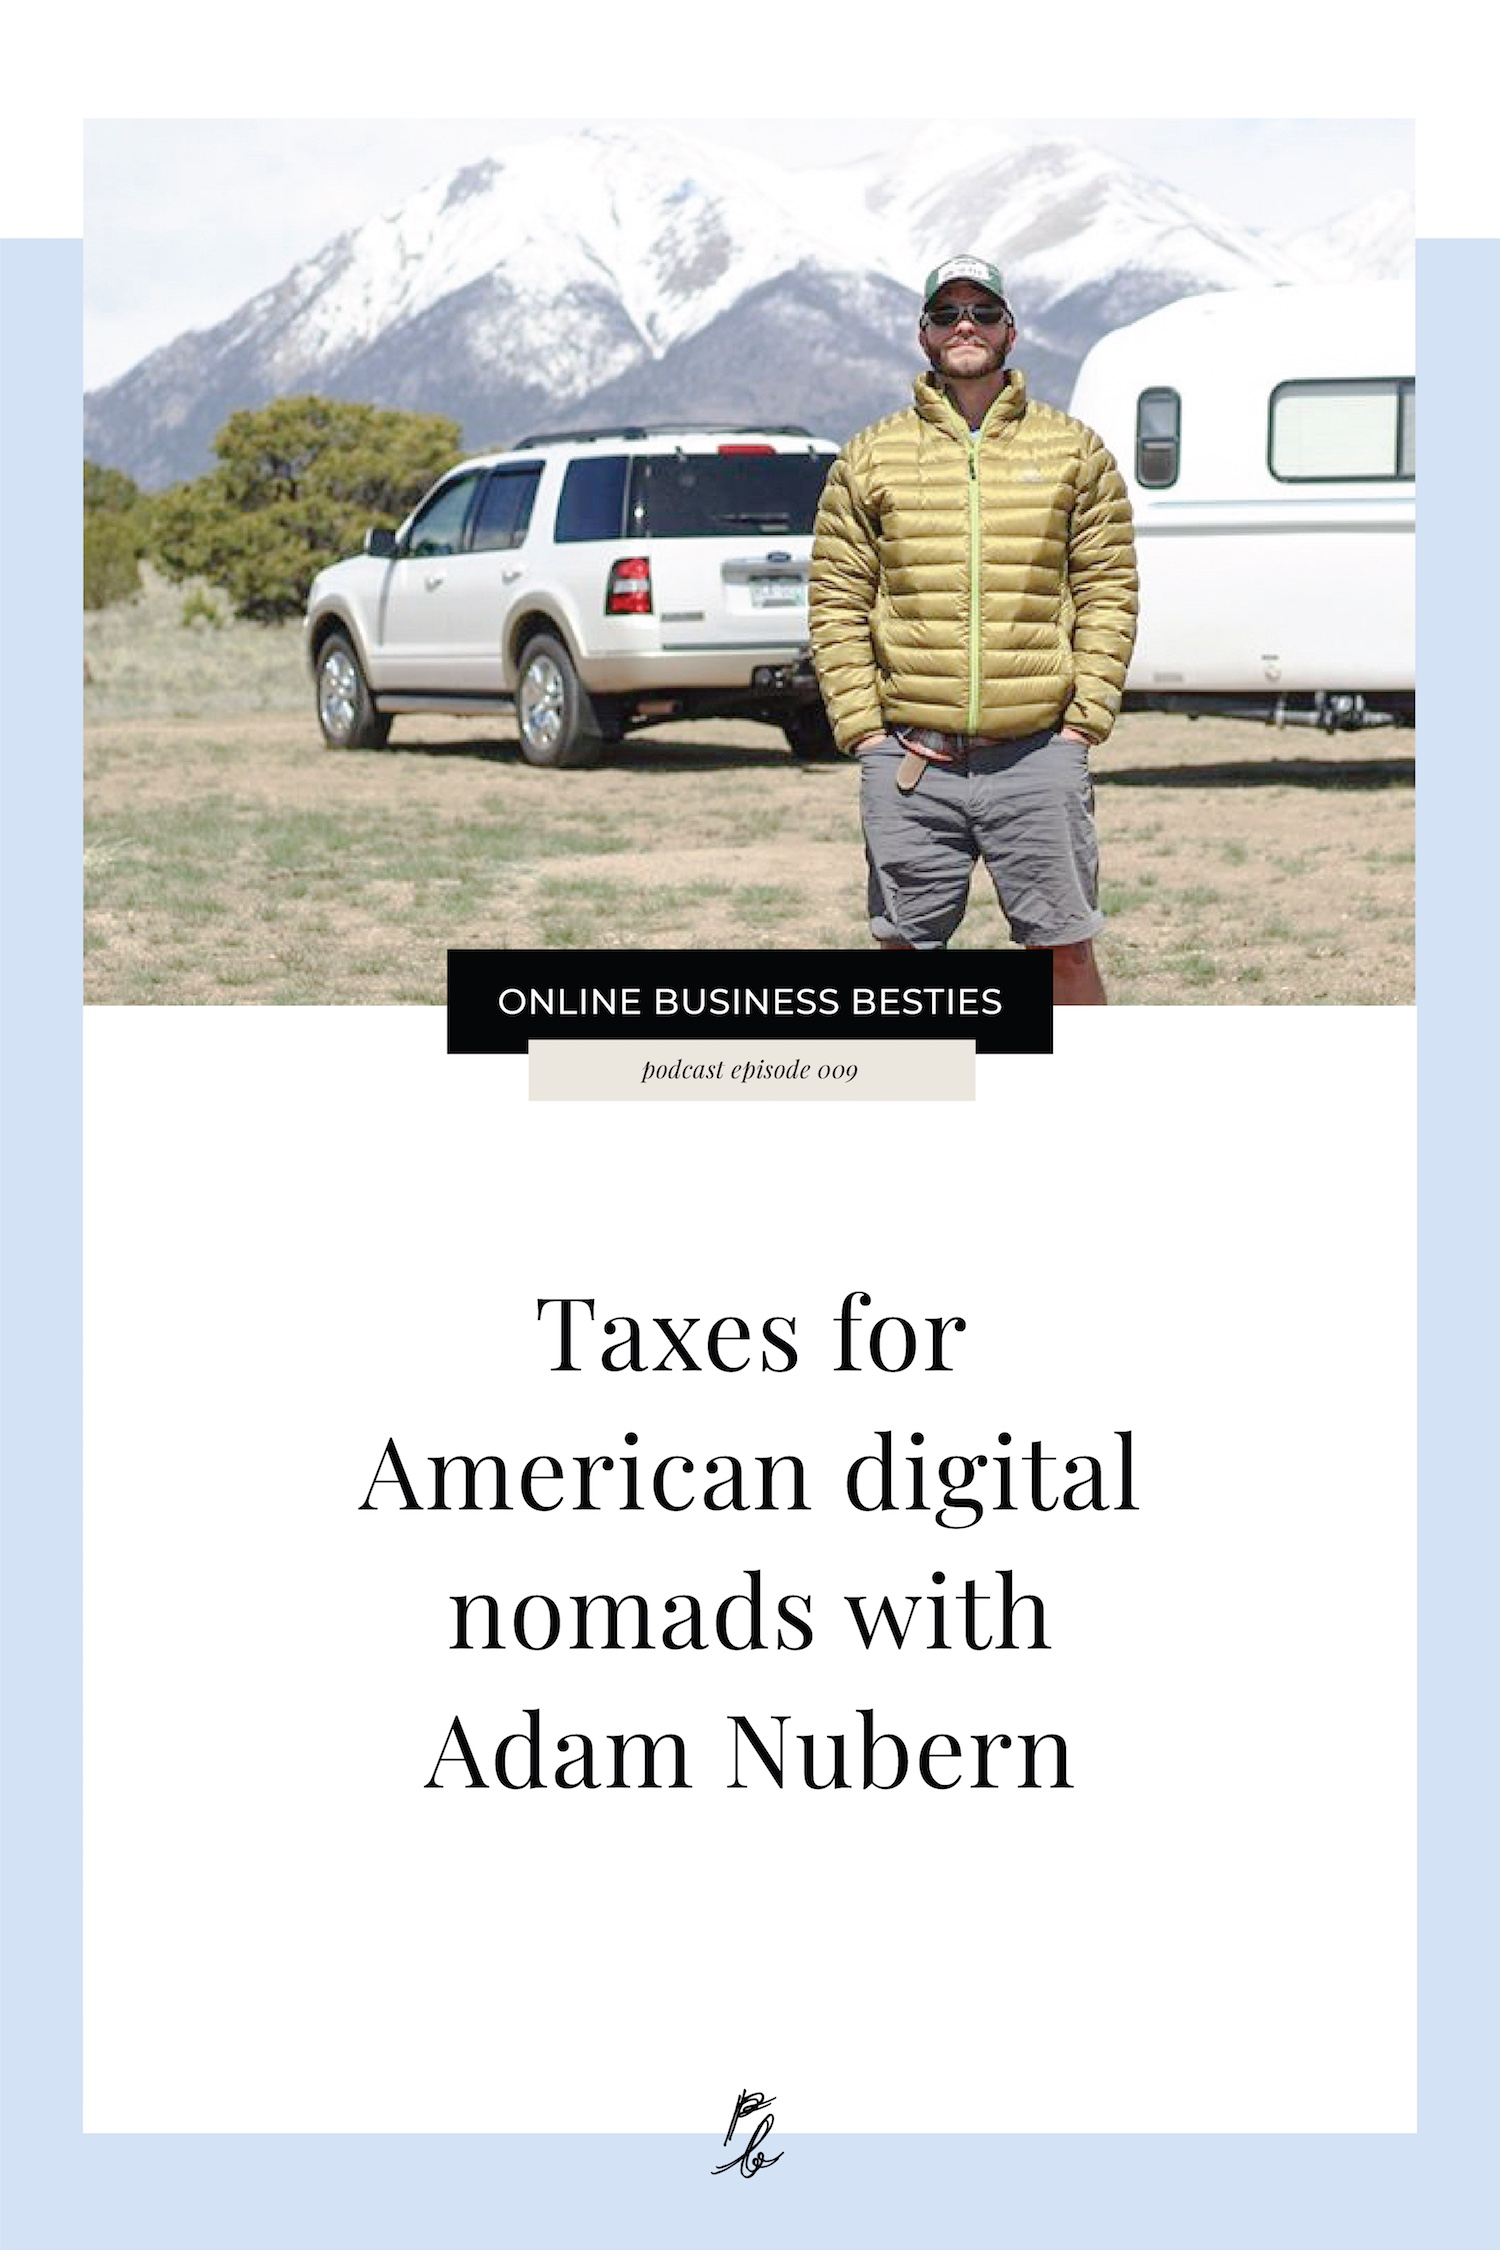 099 Taxes for American digital nomads with Adam nubern.jpeg